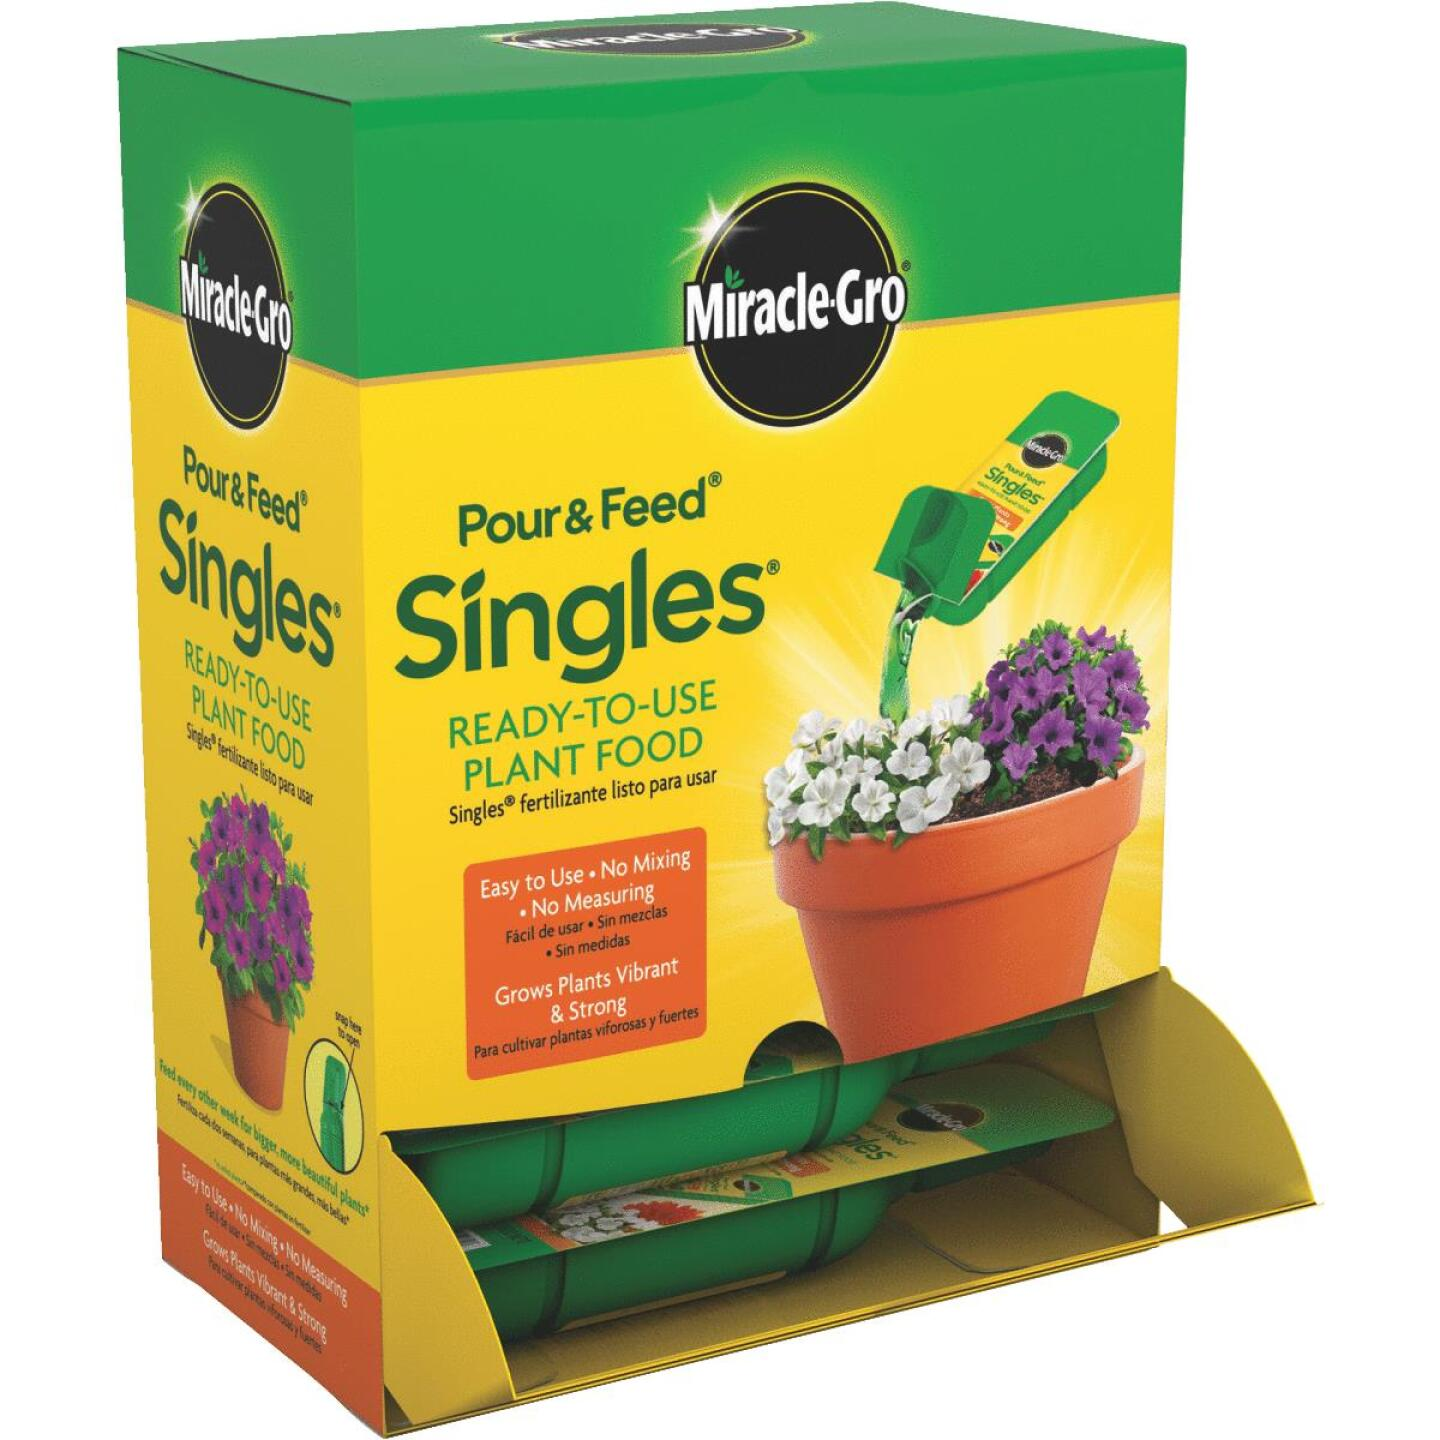 Miracle-Gro 2 Oz. 0.02-0.02-0.02 Ready To Use Liquid Plant Food Image 3